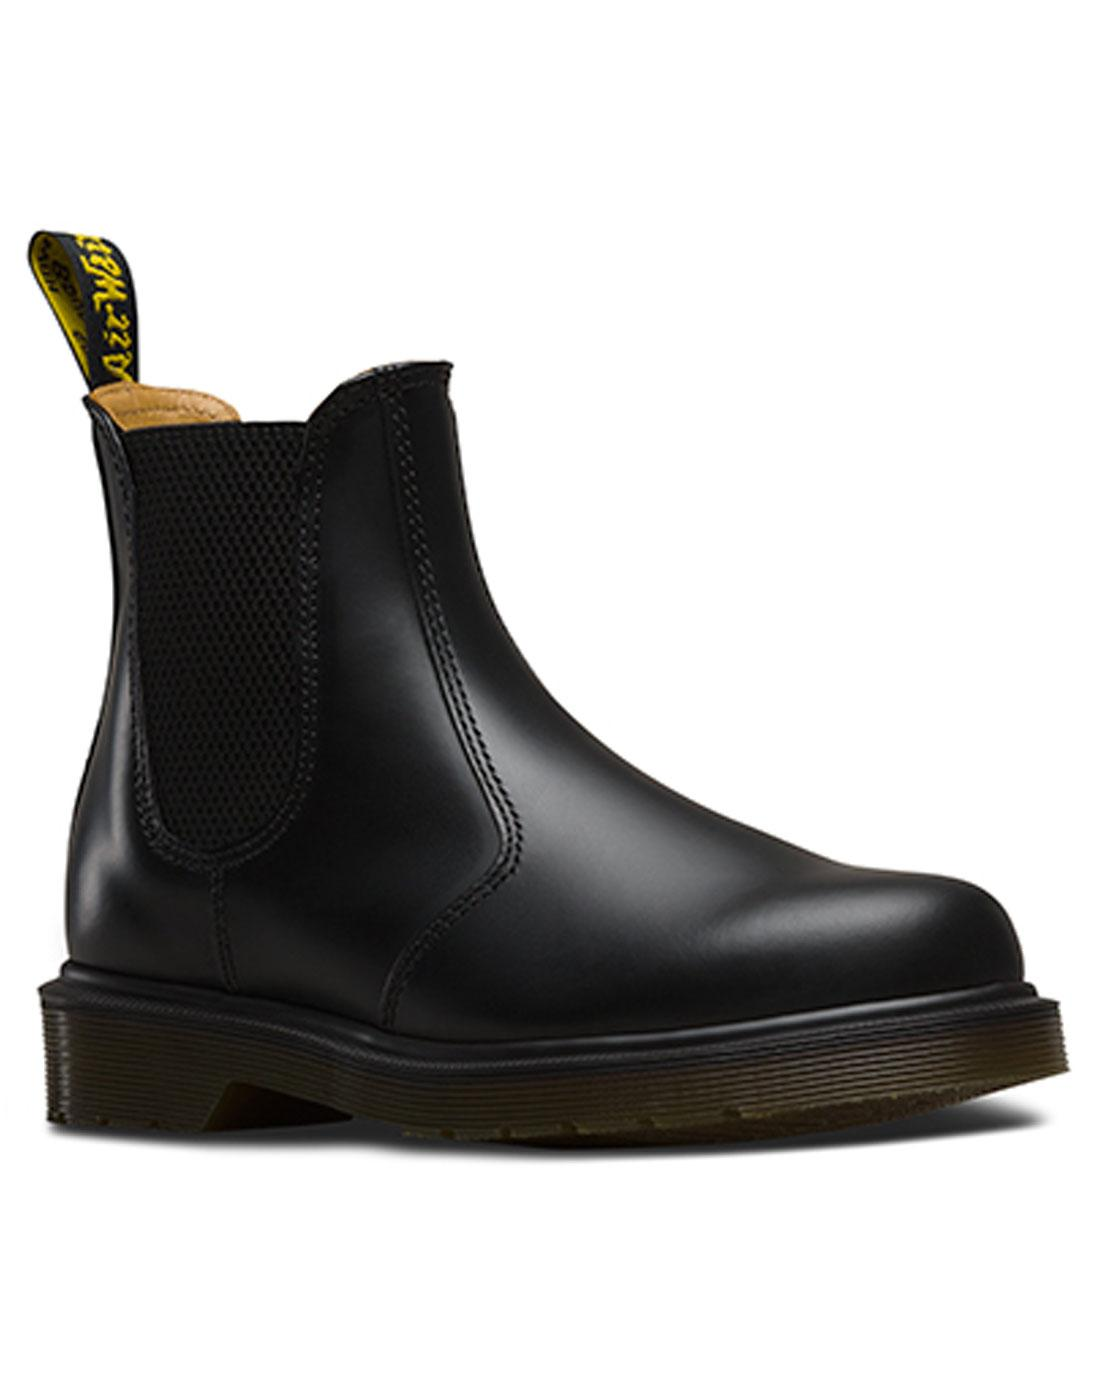 2976 Smooth DR MARTENS 60s Mod Chelsea Boots BLACK